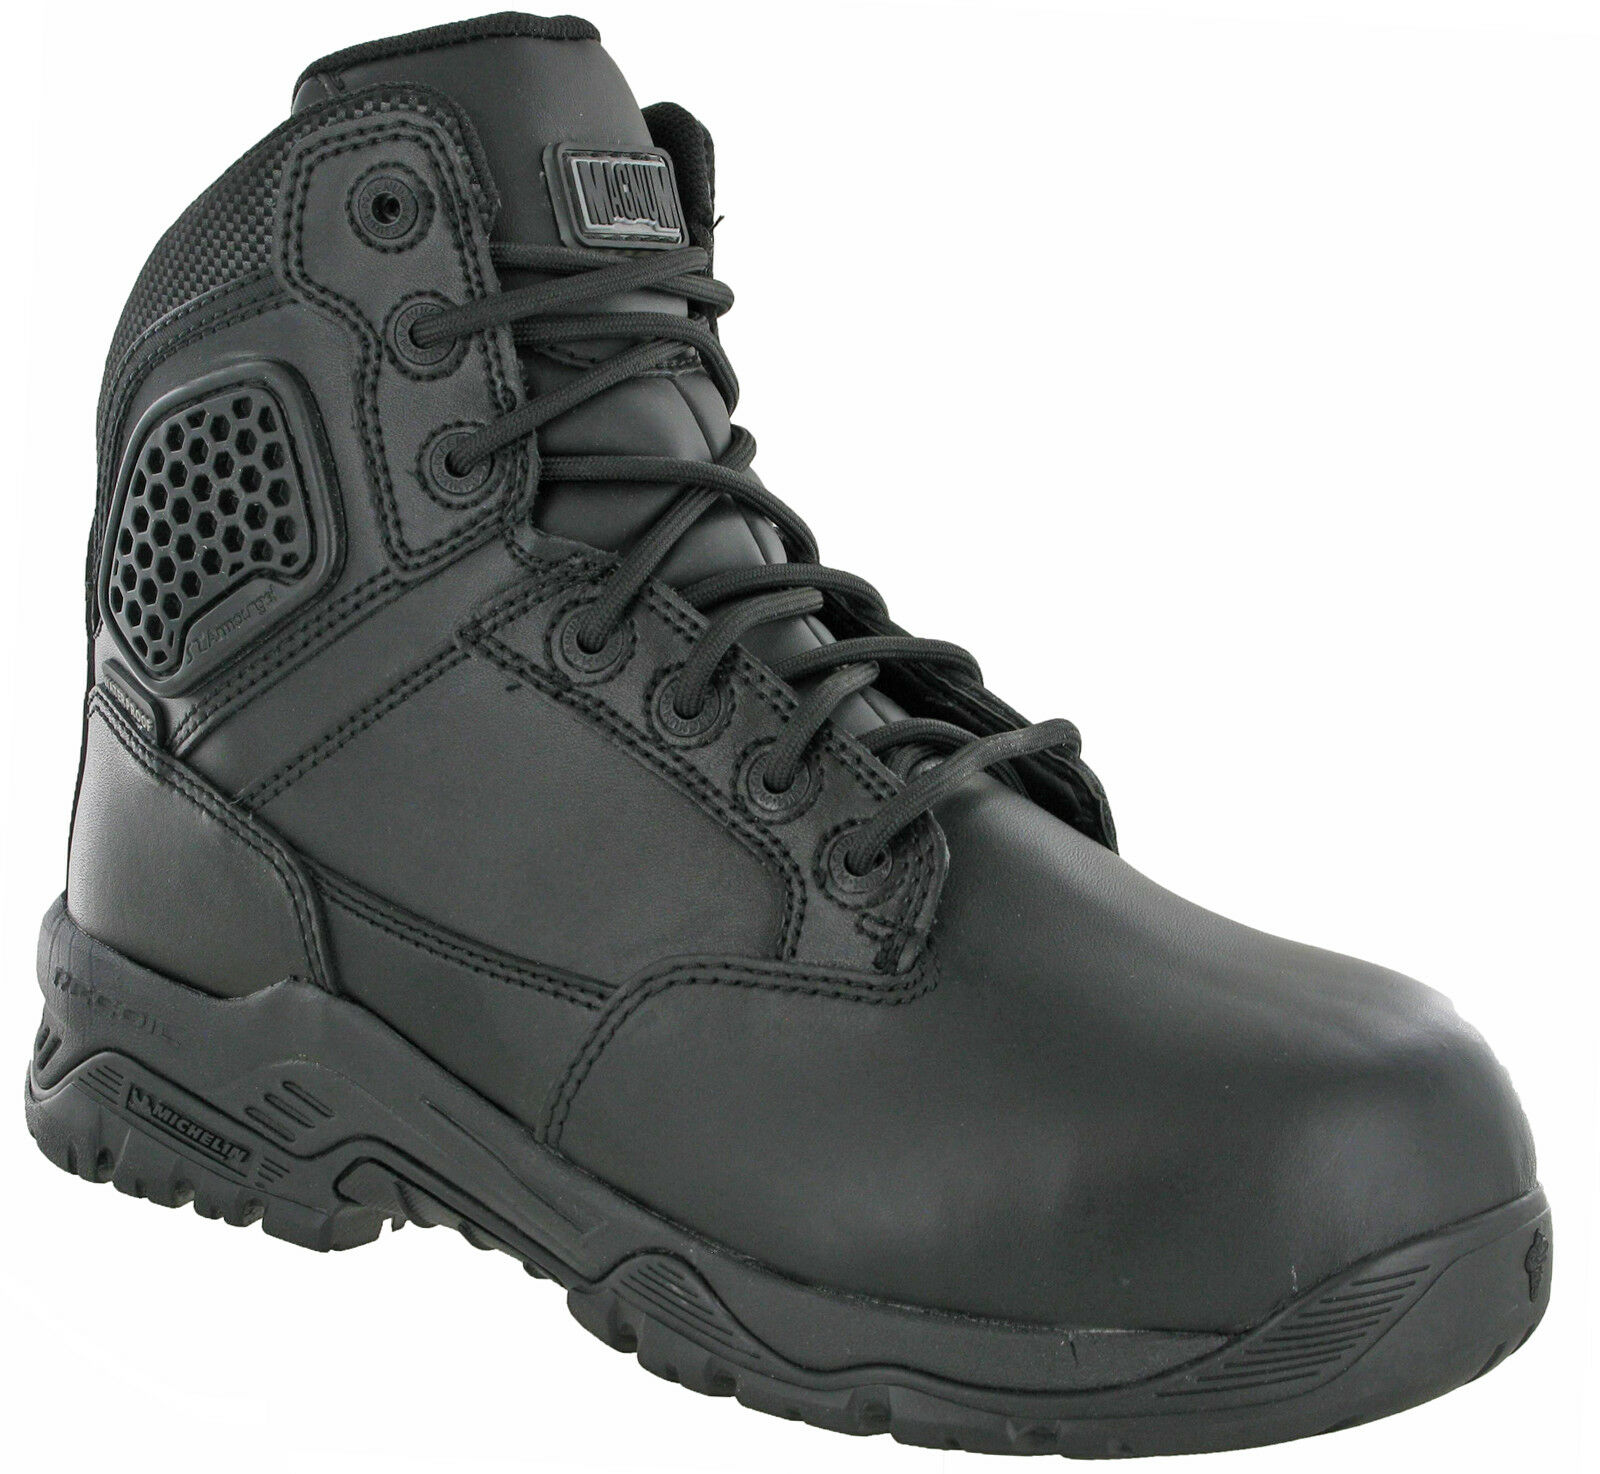 Magnum Safety Police Army Strike Force Leather 6.0 Stiefel Lightweight UK 7-14